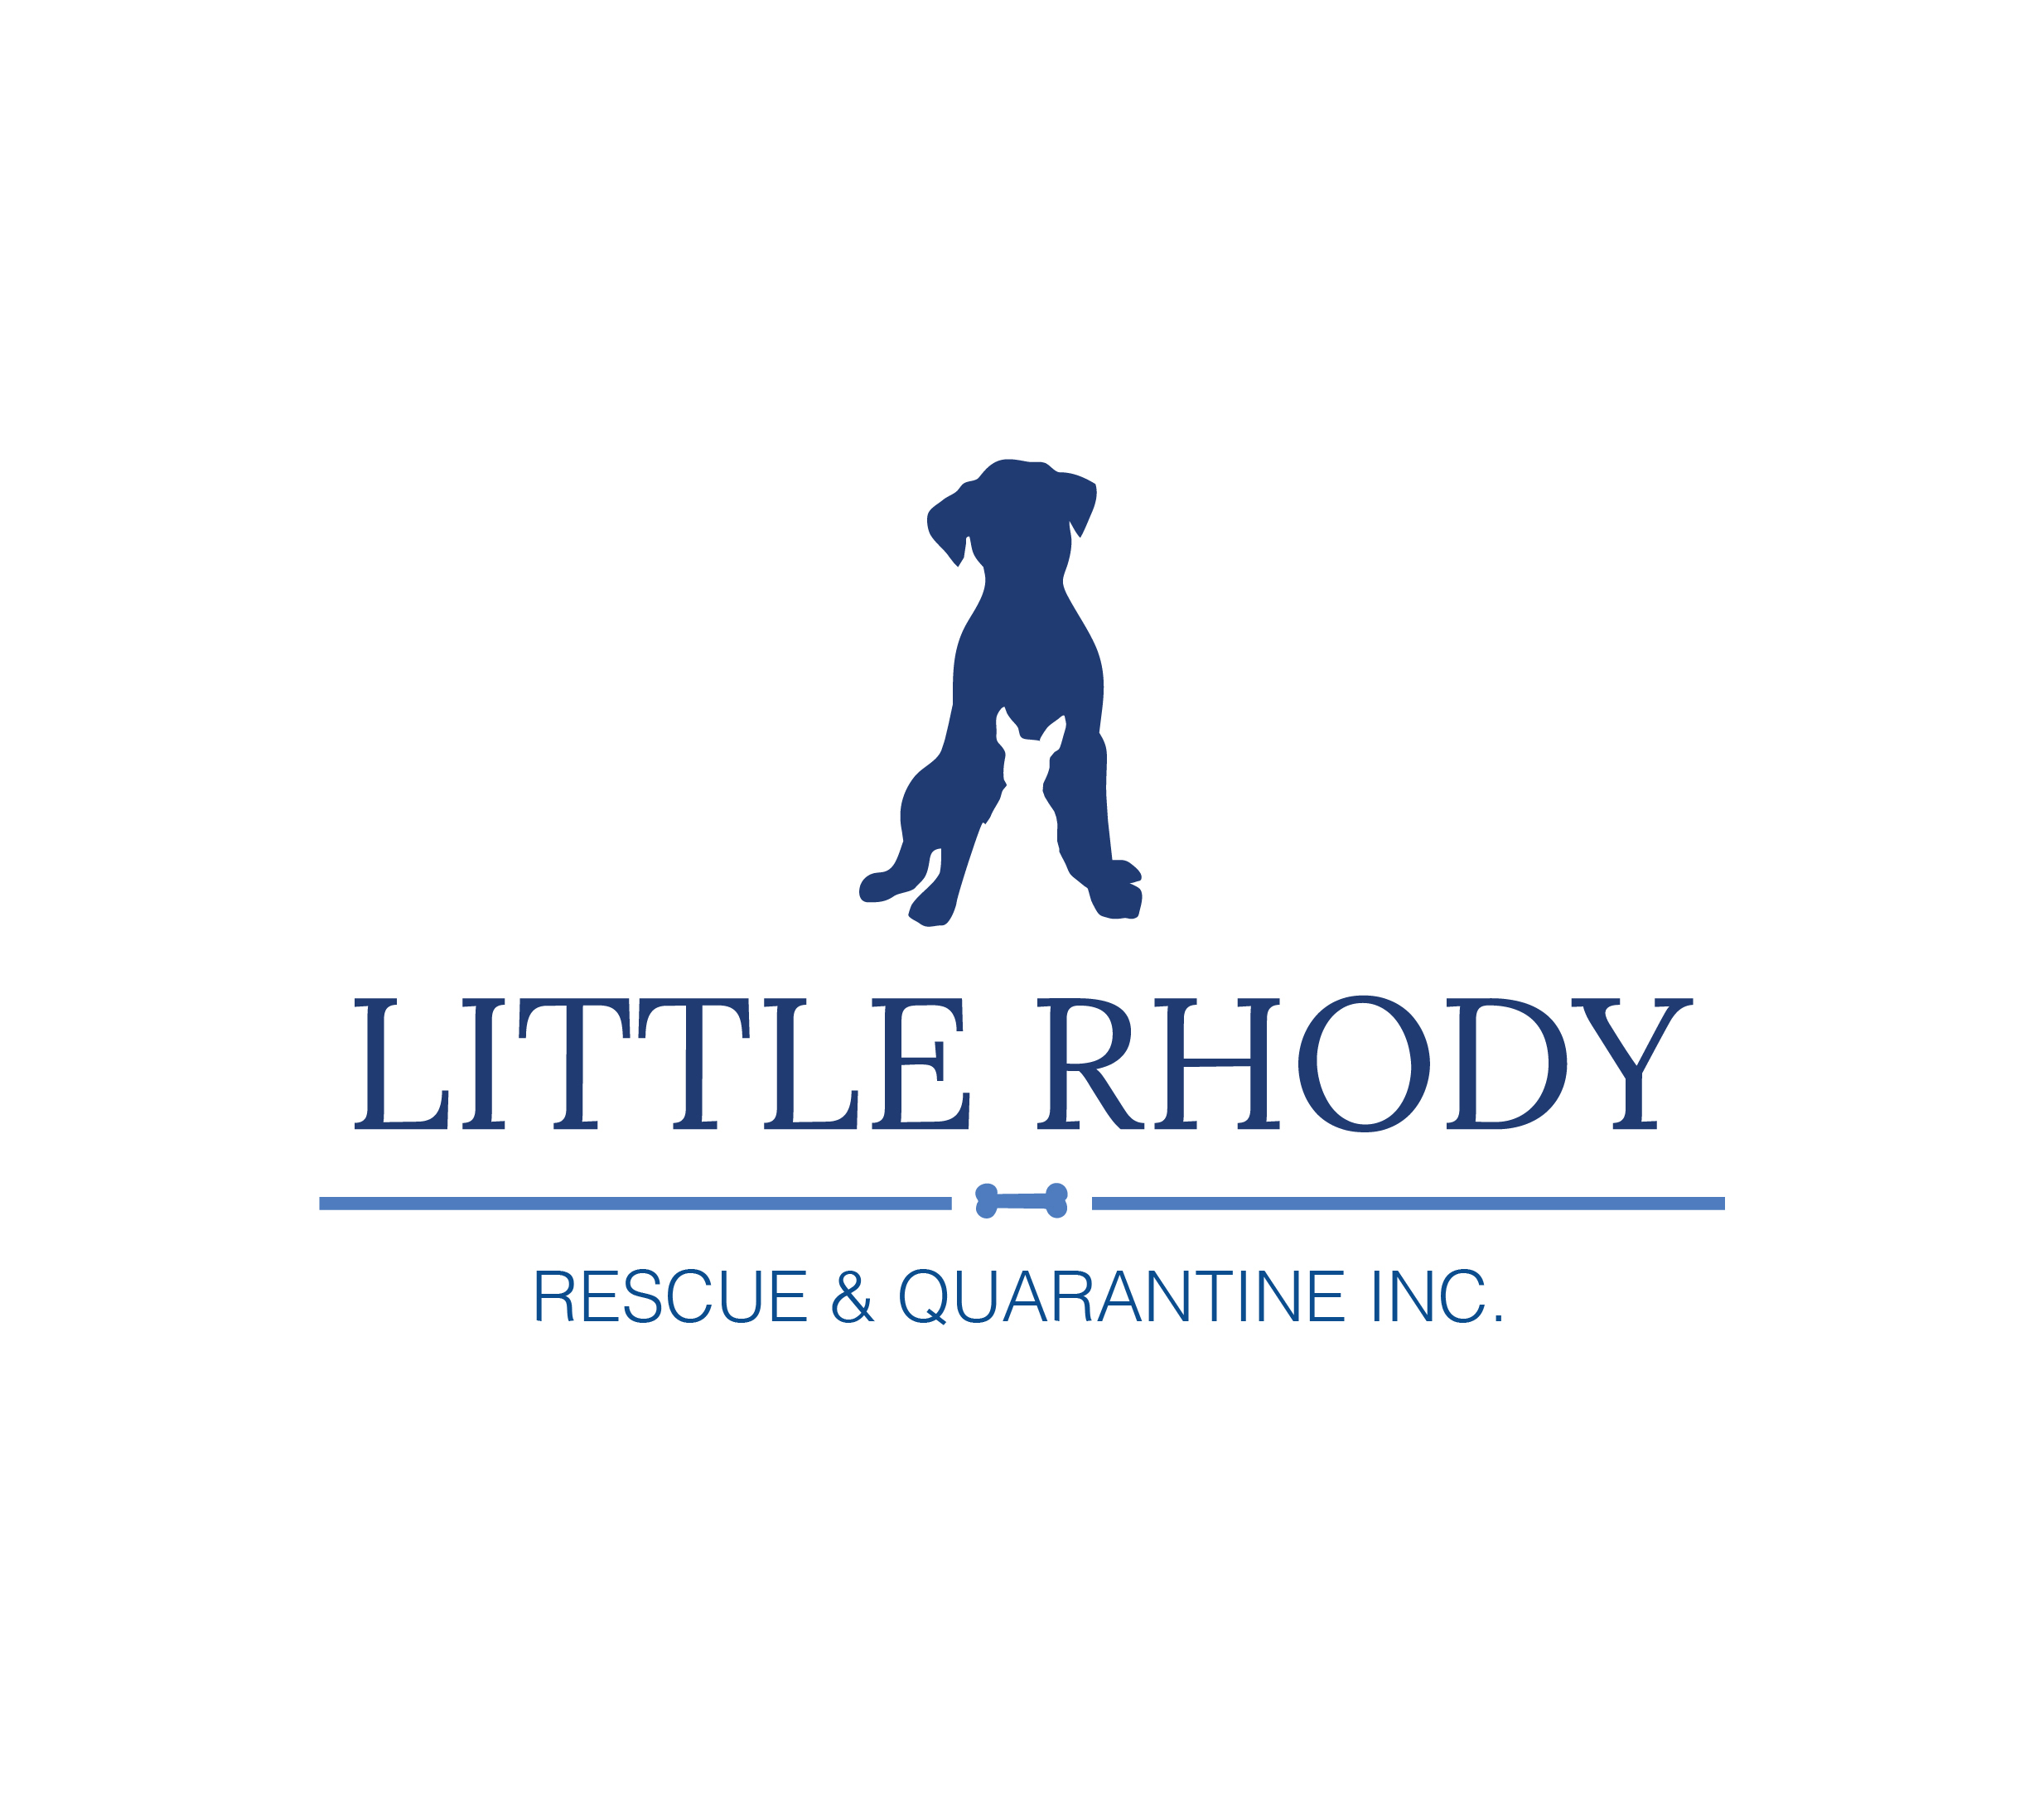 Little Rhody Rescue